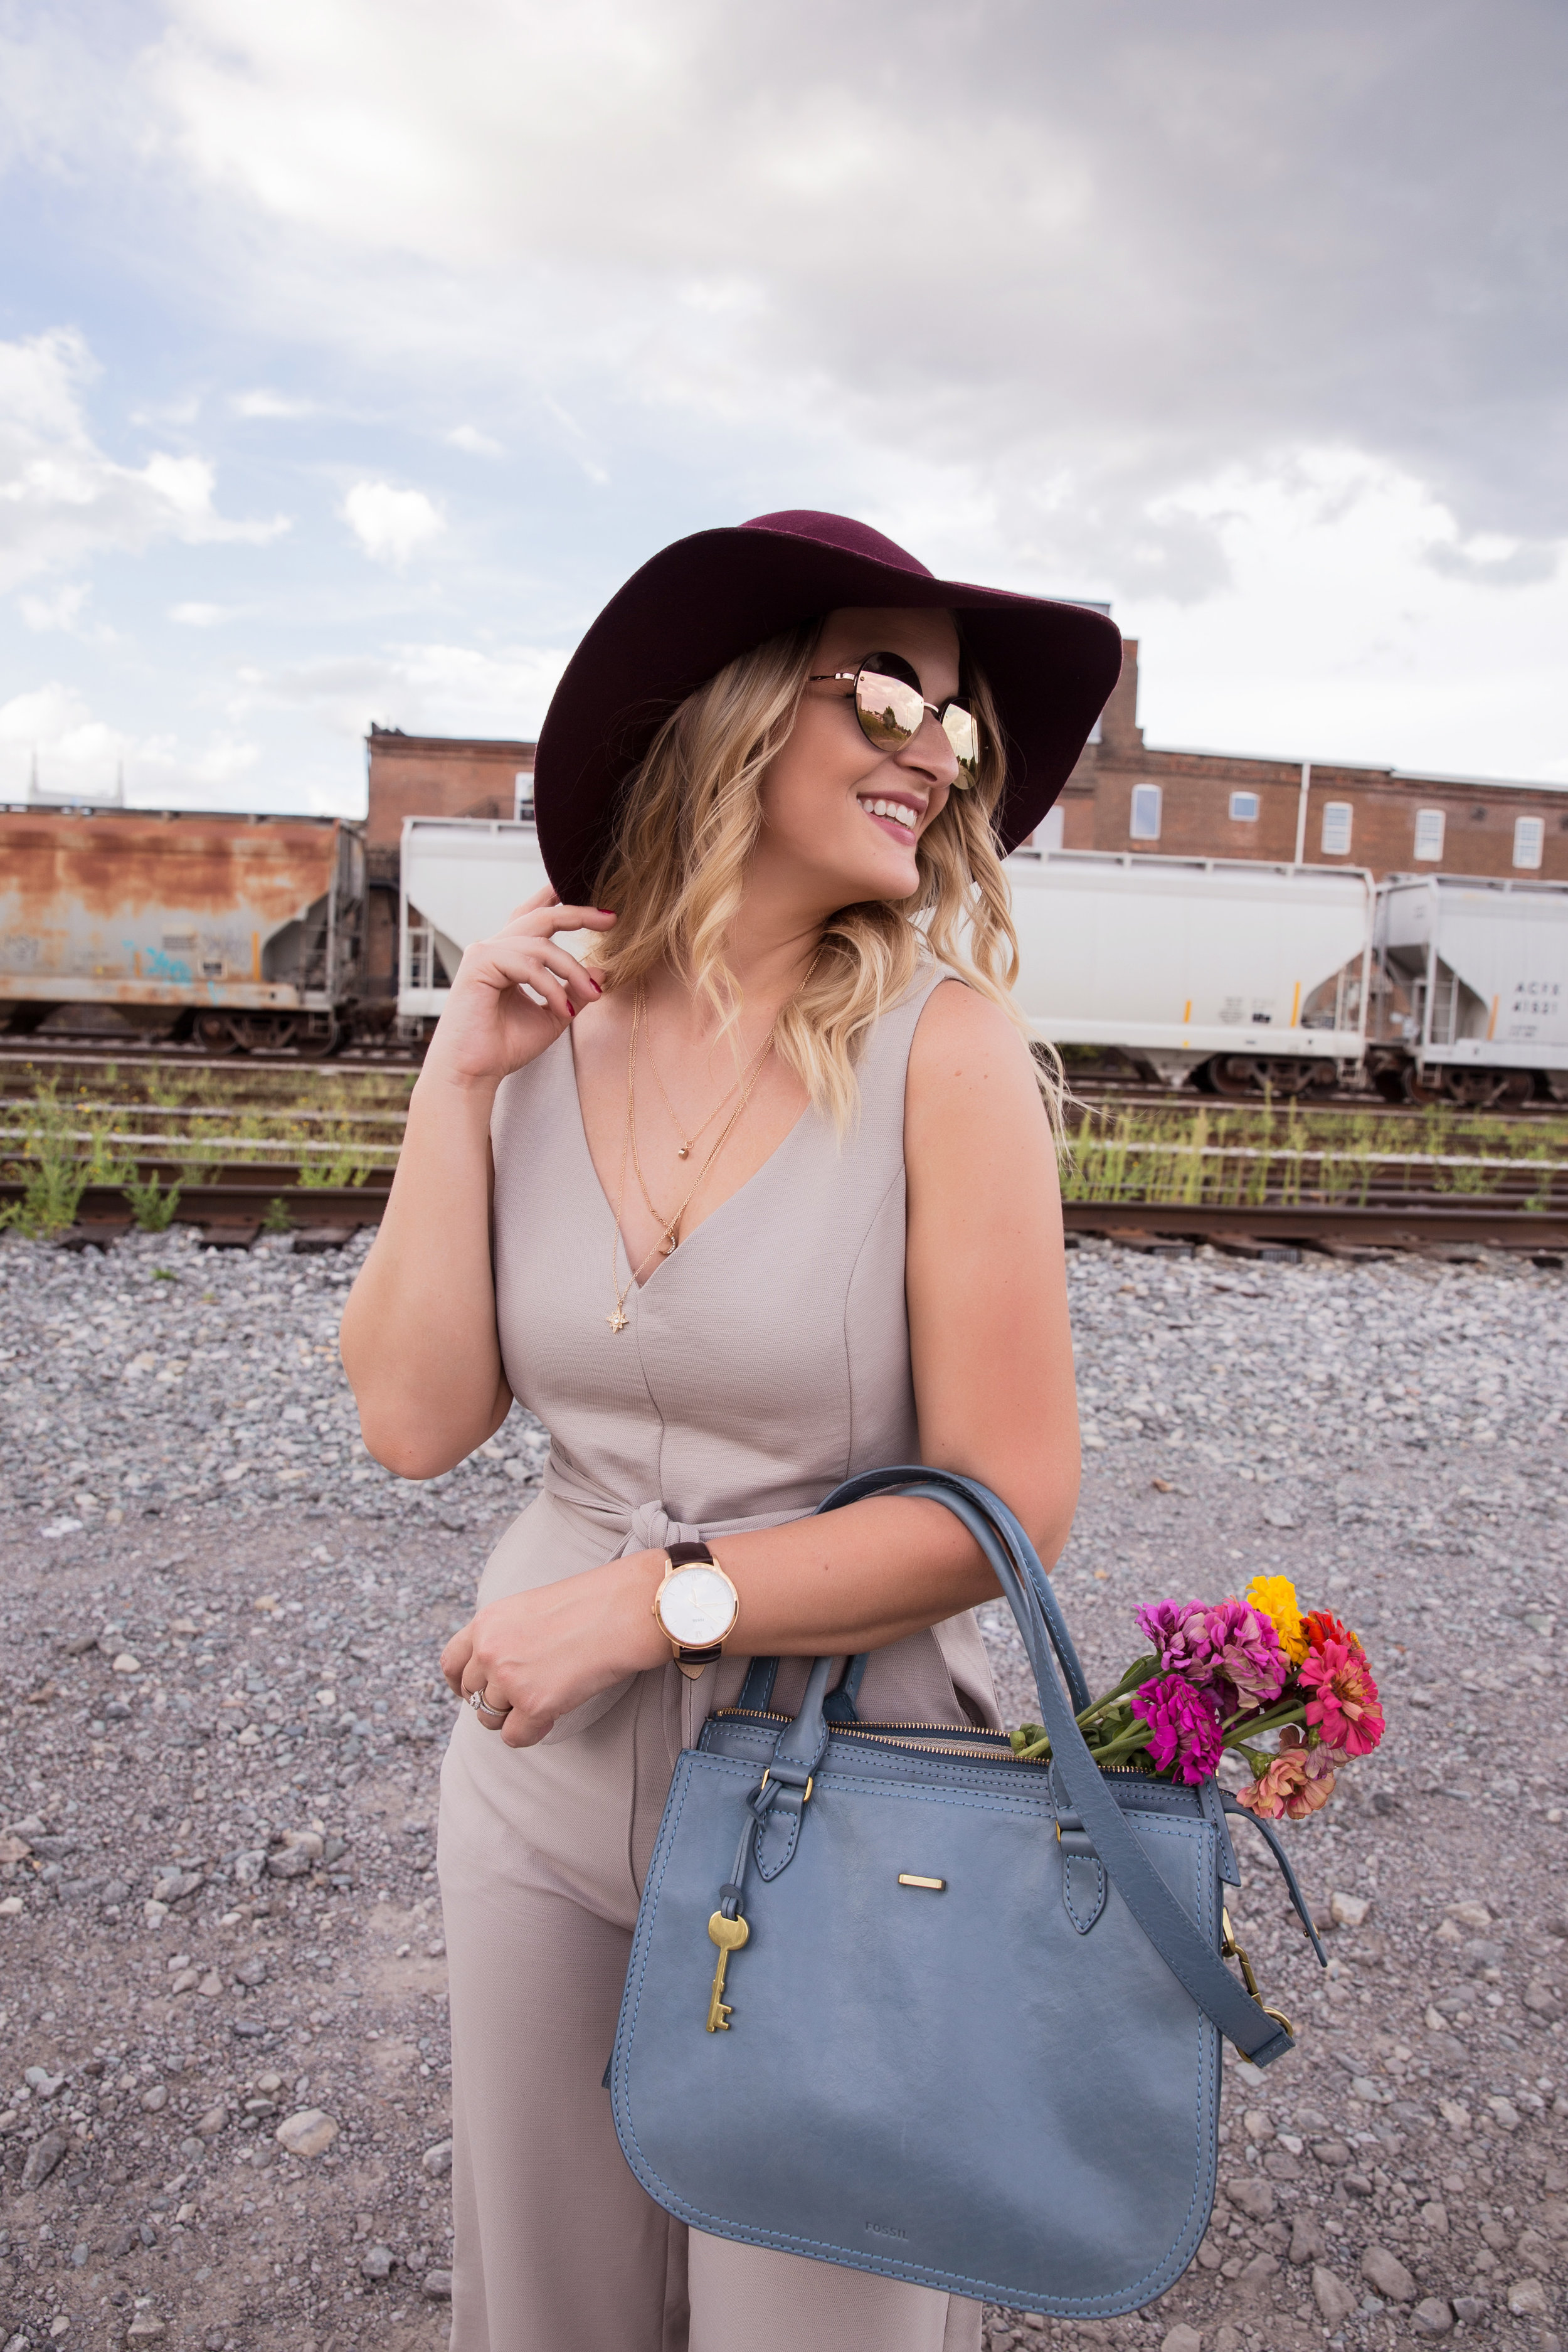 Breezy and Brazen - I'm Laura, a Nashville resident by way of West Michigan. Breezy and Brazen is where I share my personal style, travels, favorite eats, and affinity for everything Music City.